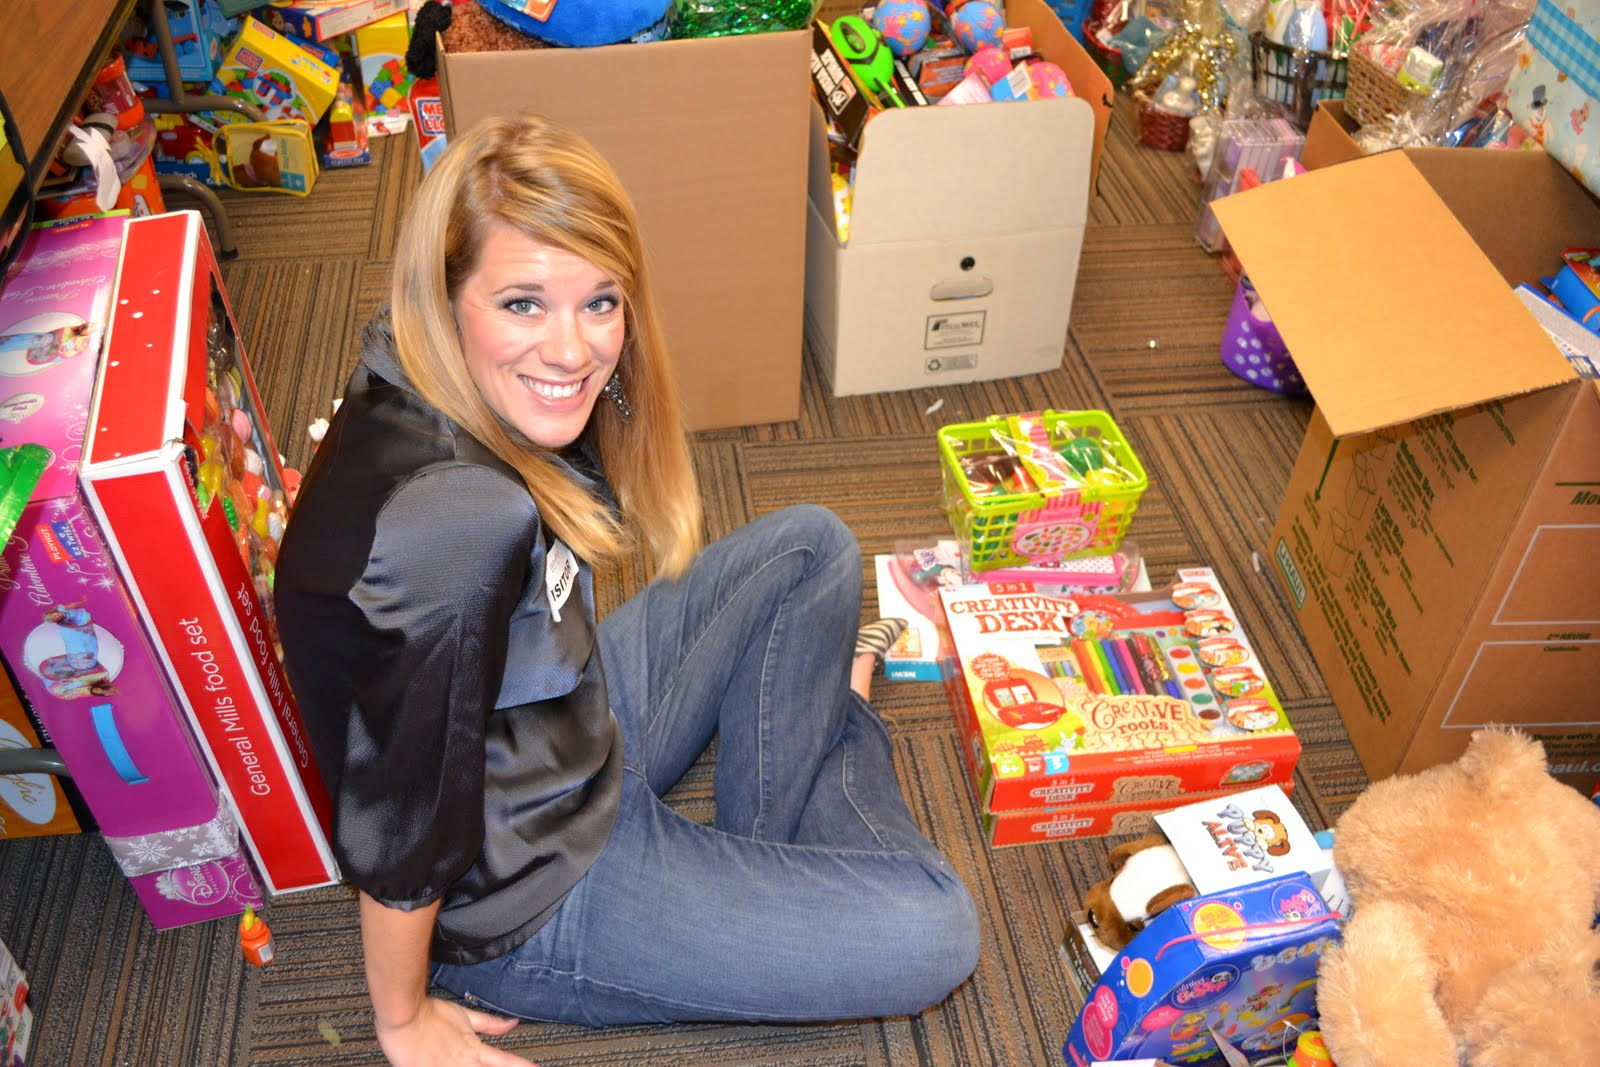 Our job was to help categorize and organize the donated toys into age  groups and tally